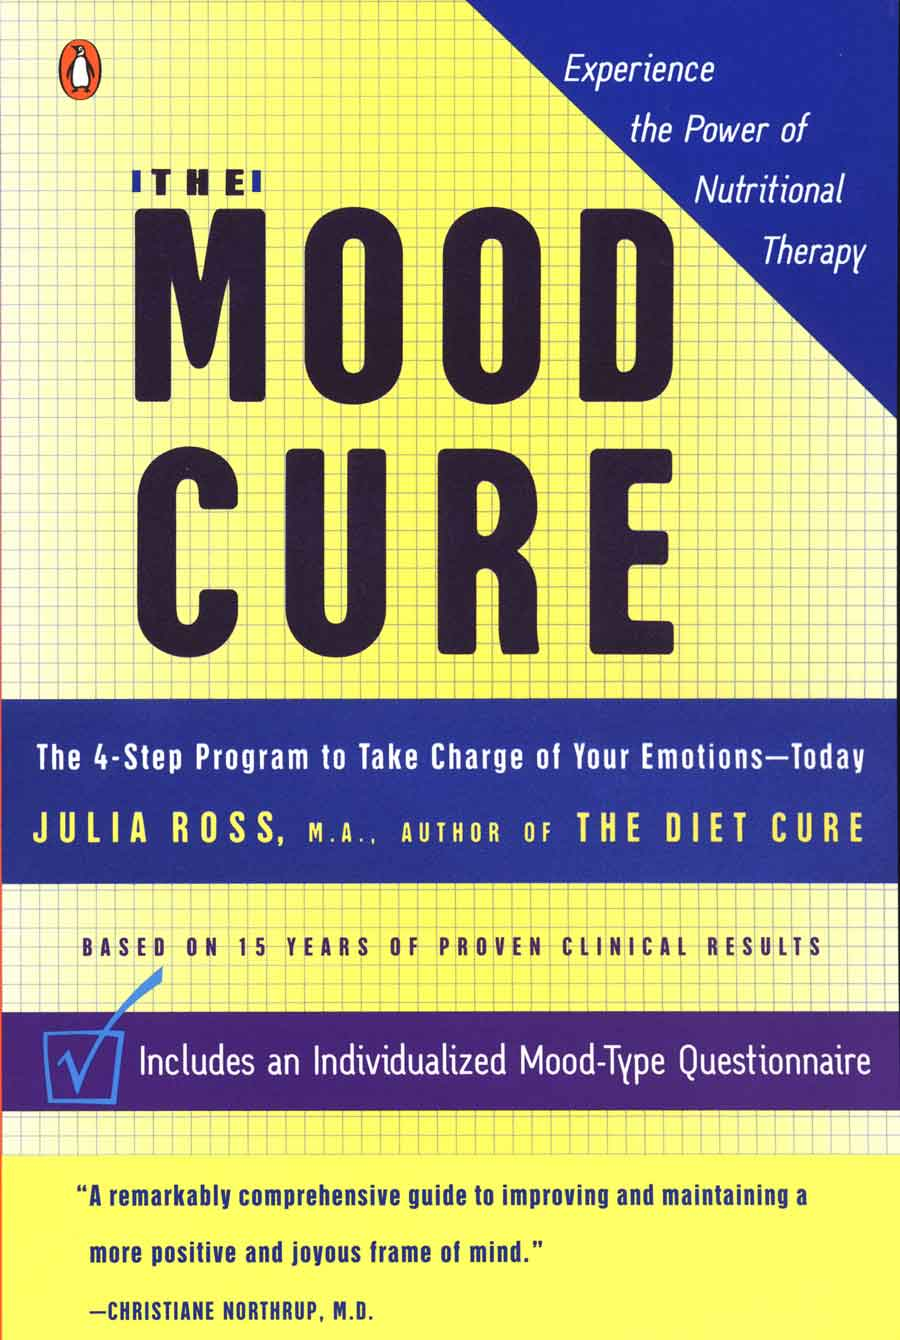 The Mood Cure by Julia Ross | Julia Ross' Cures